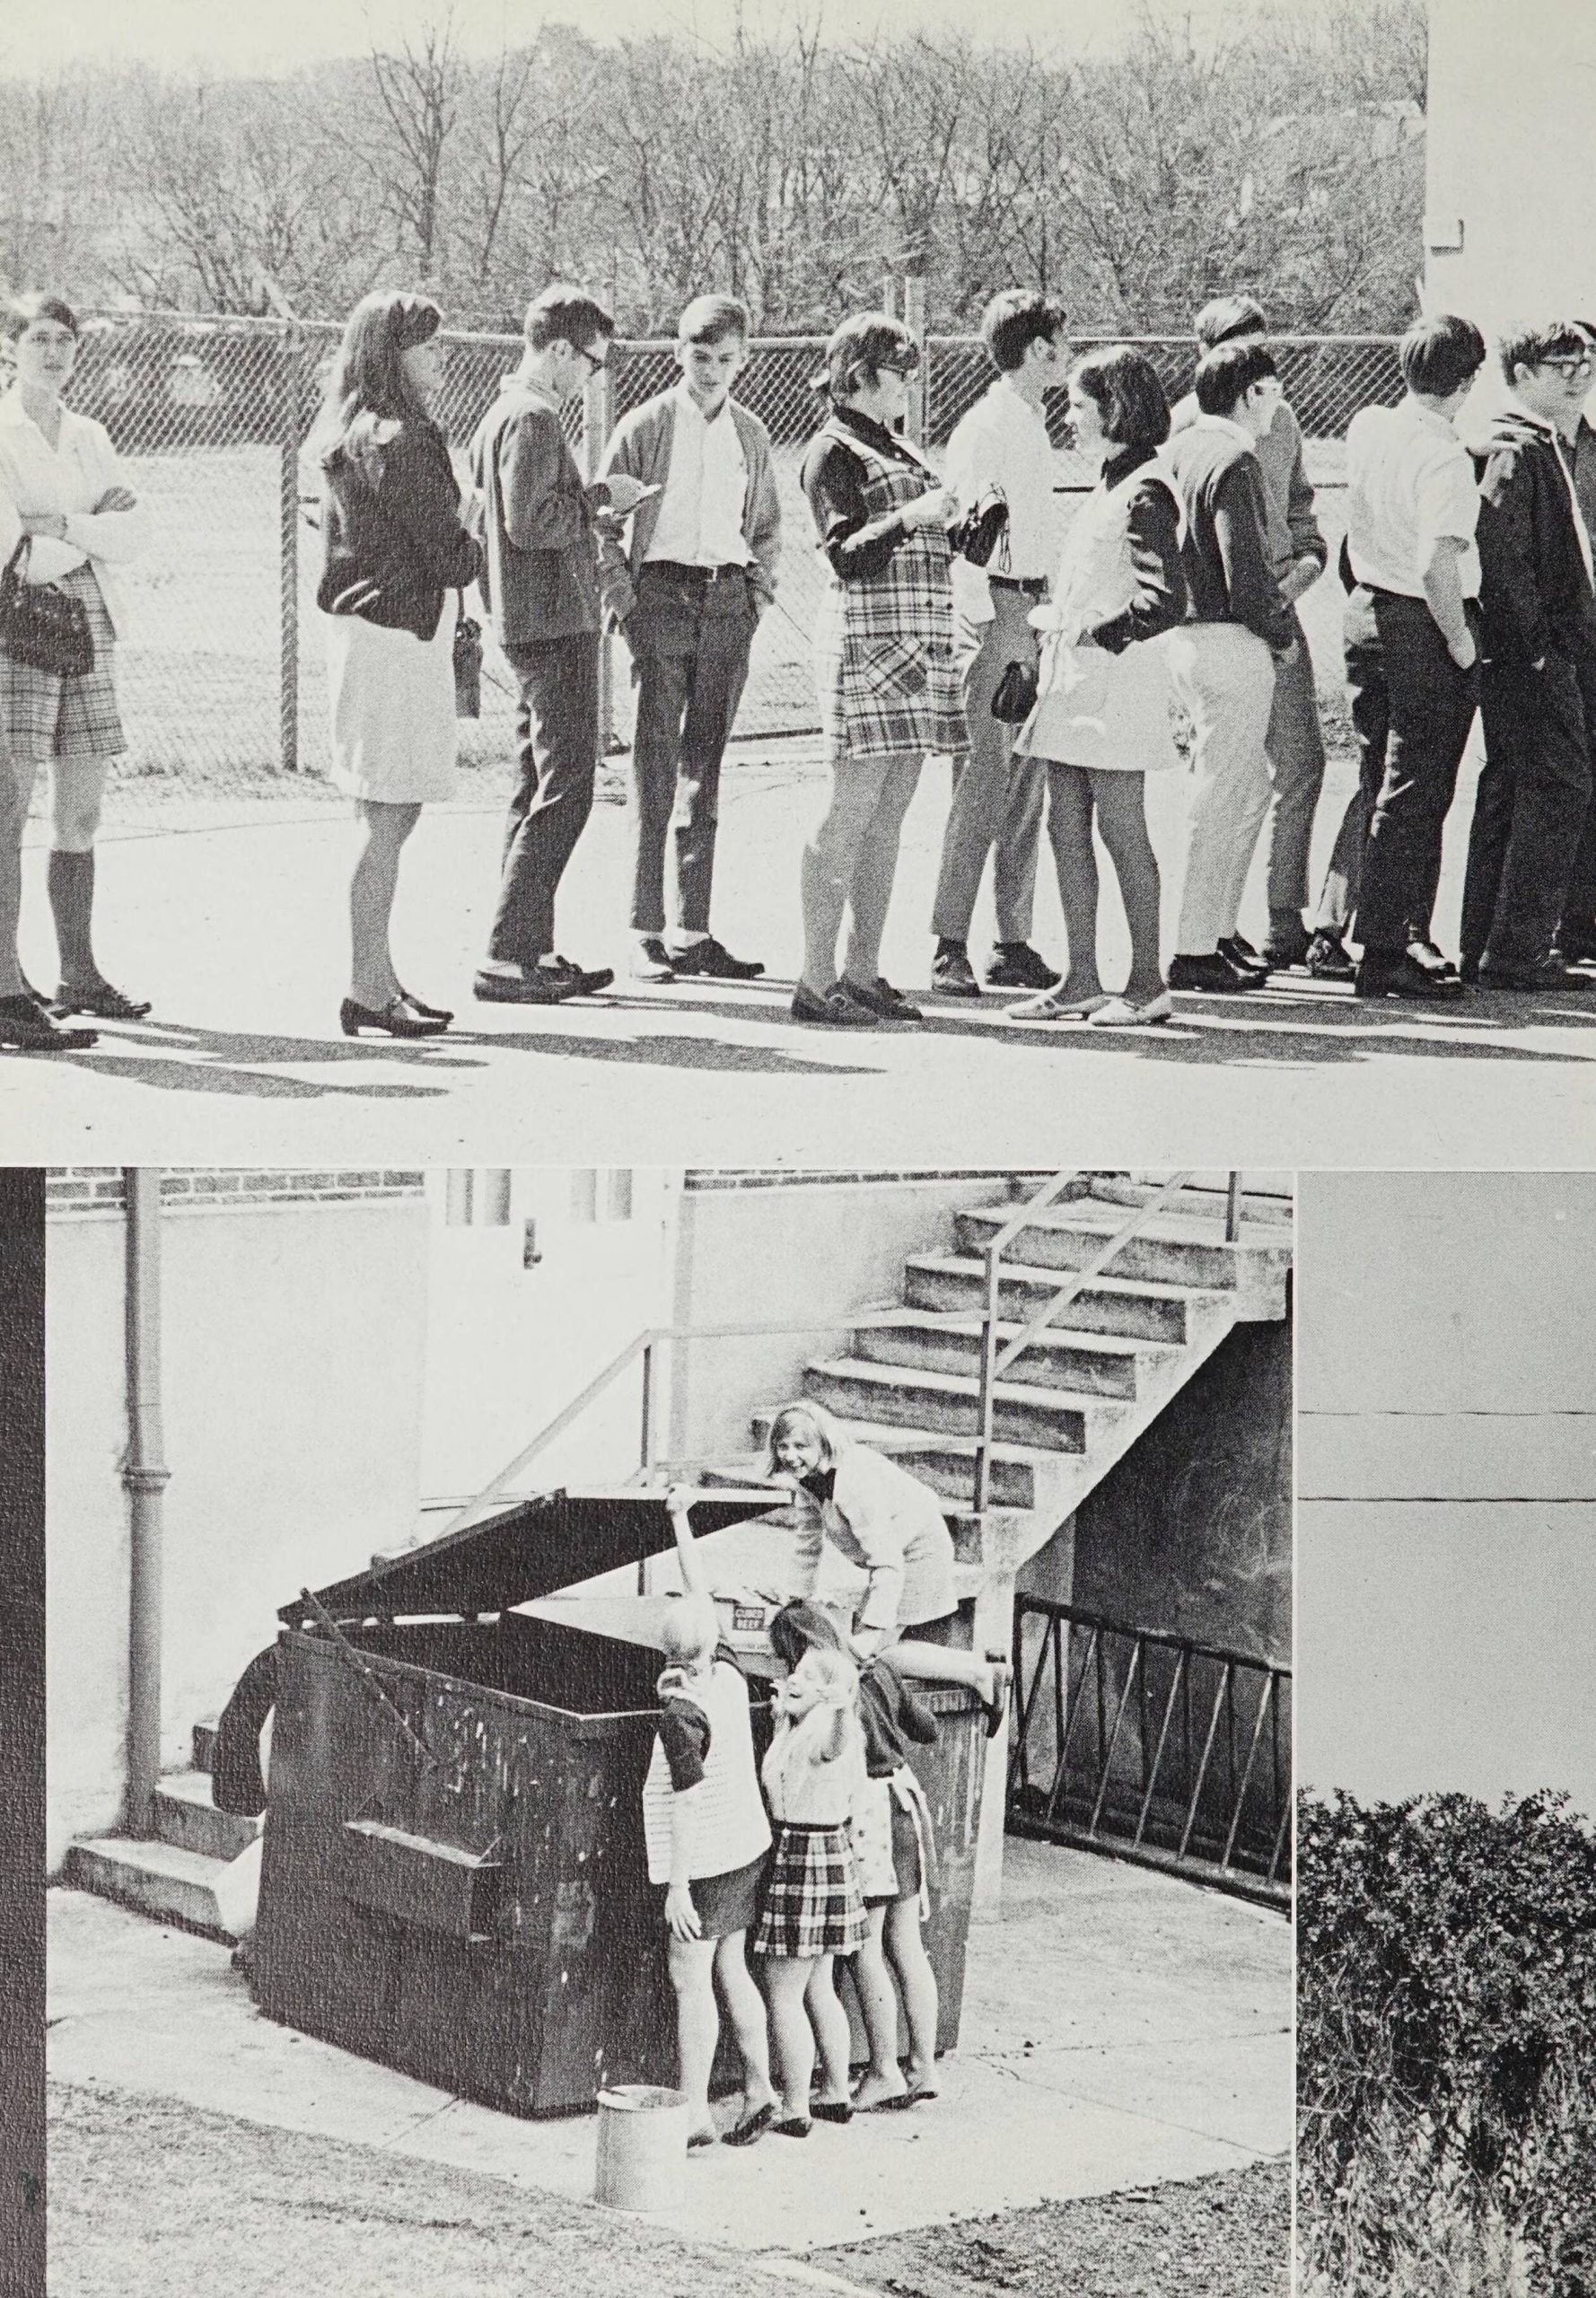 Two pictures. First pictures shows students standing in a line. The second picture shows three students lifting the lid to a dumpster while another student looks like they are about to go into the dumpster.